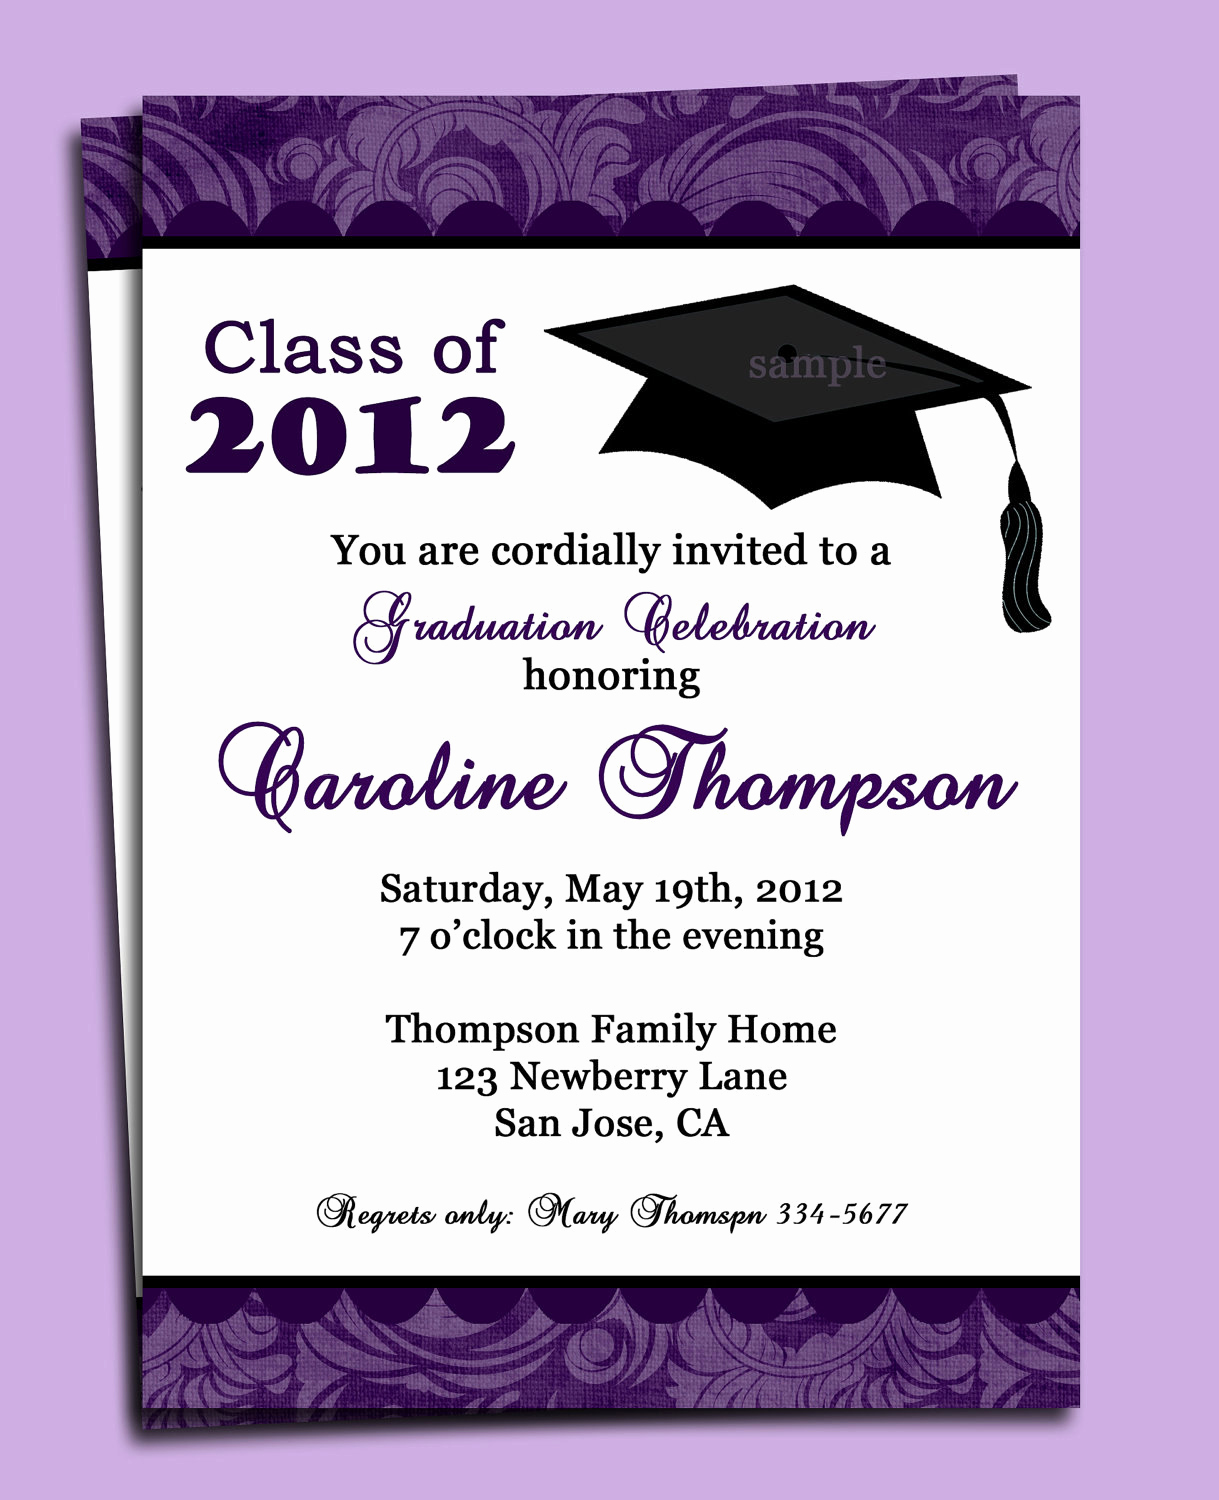 Making A Graduation Invitation Elegant Graduation Party or Announcement Invitation Printable or